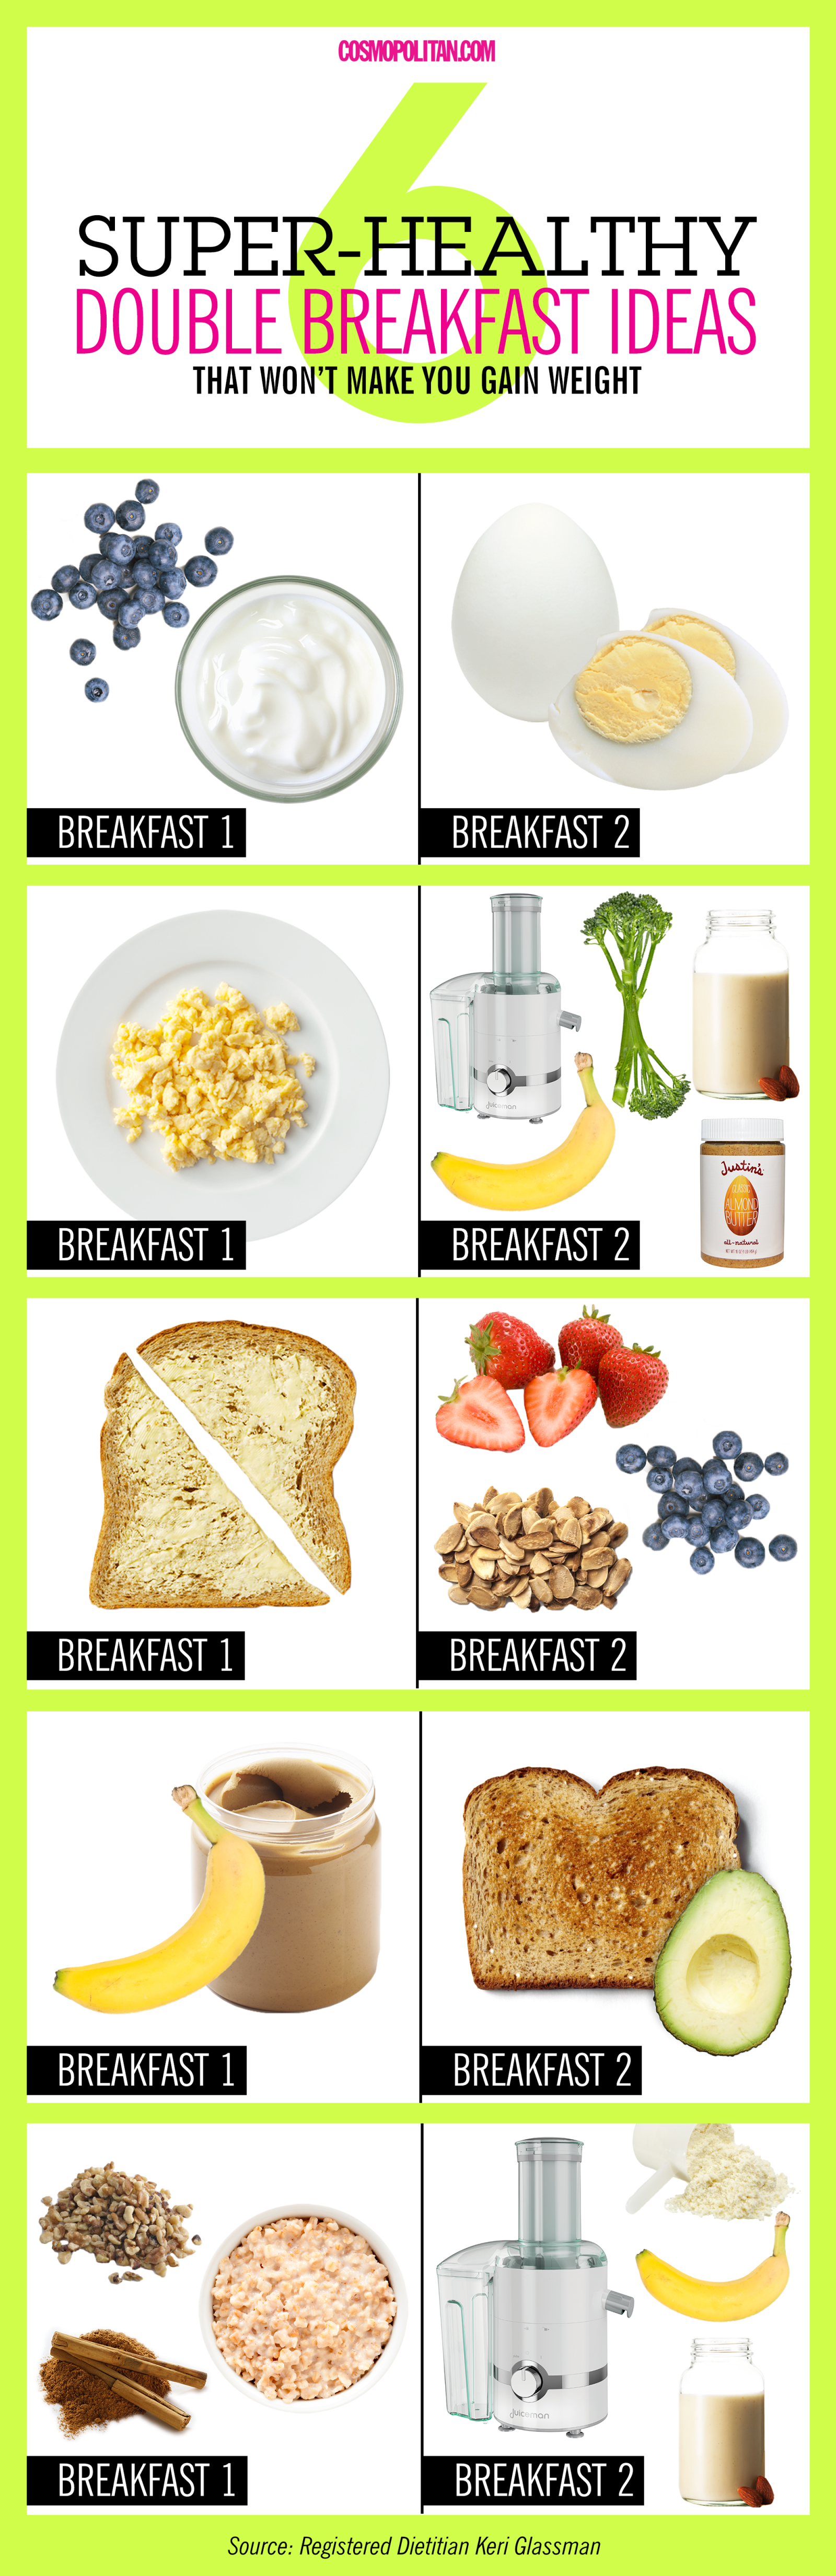 6 Delicious Ways to Eat 2 Breakfasts Without Gaining Weight